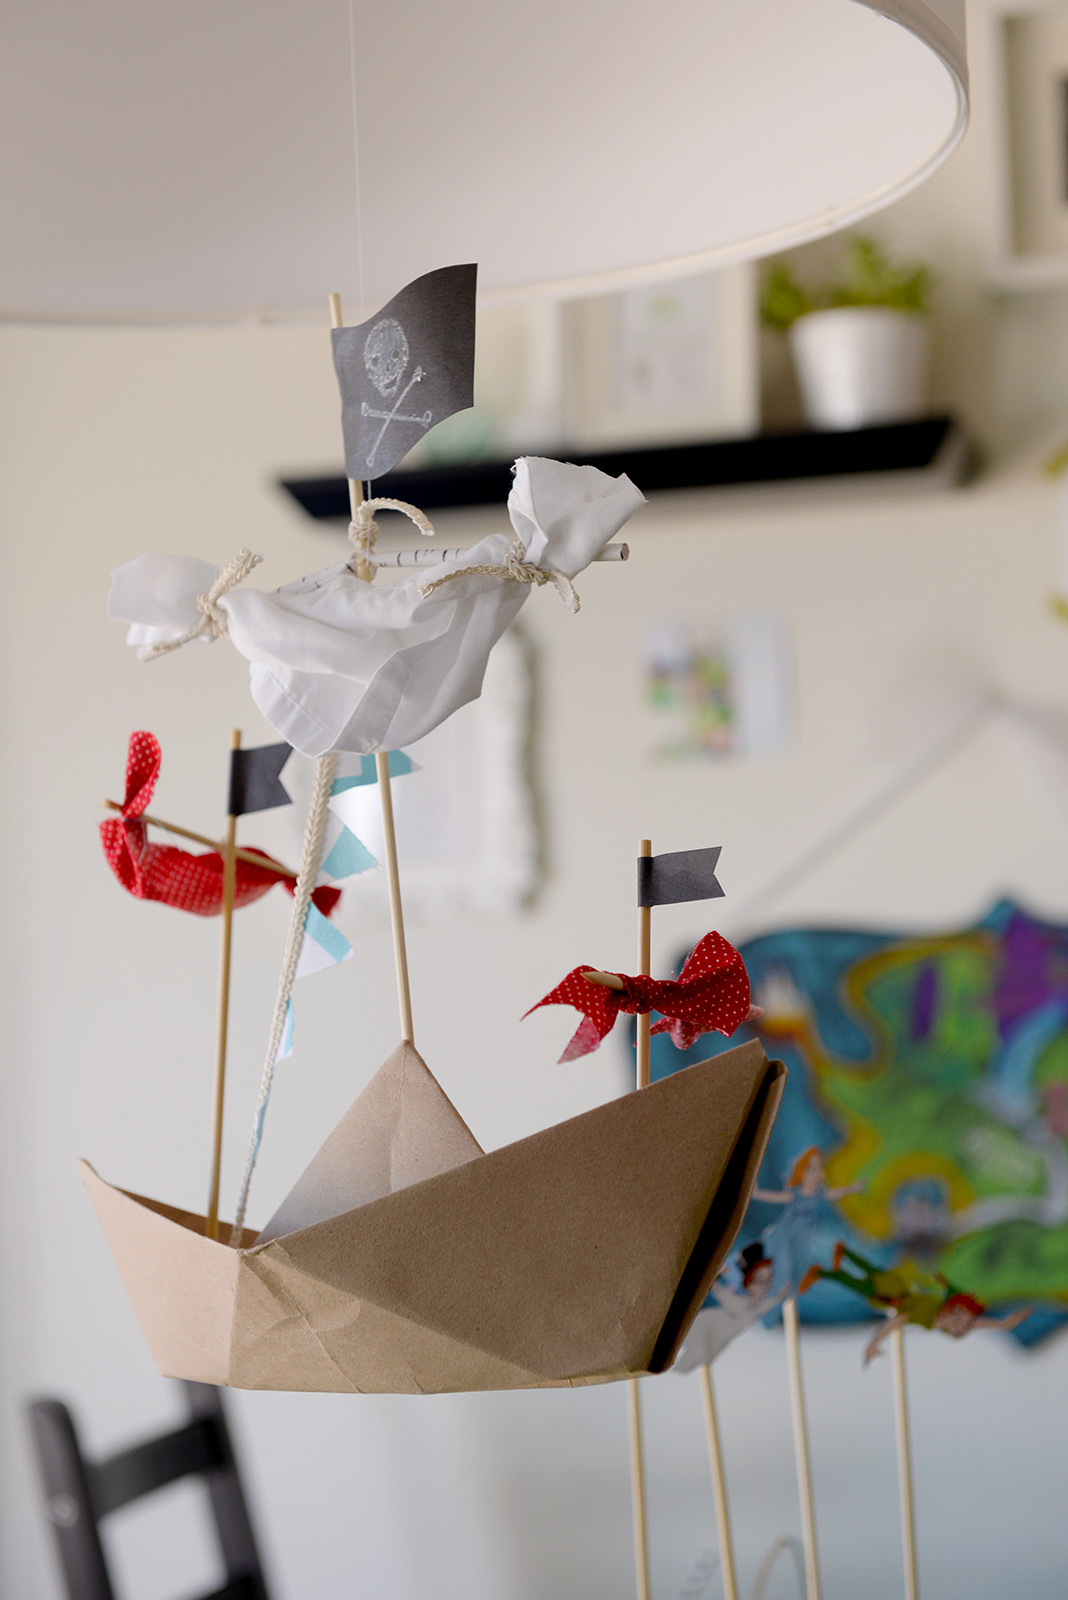 Every Neverland party needs a flying ship! (Even if it is made of paper, wooden skewers, and scraps of fabric.)